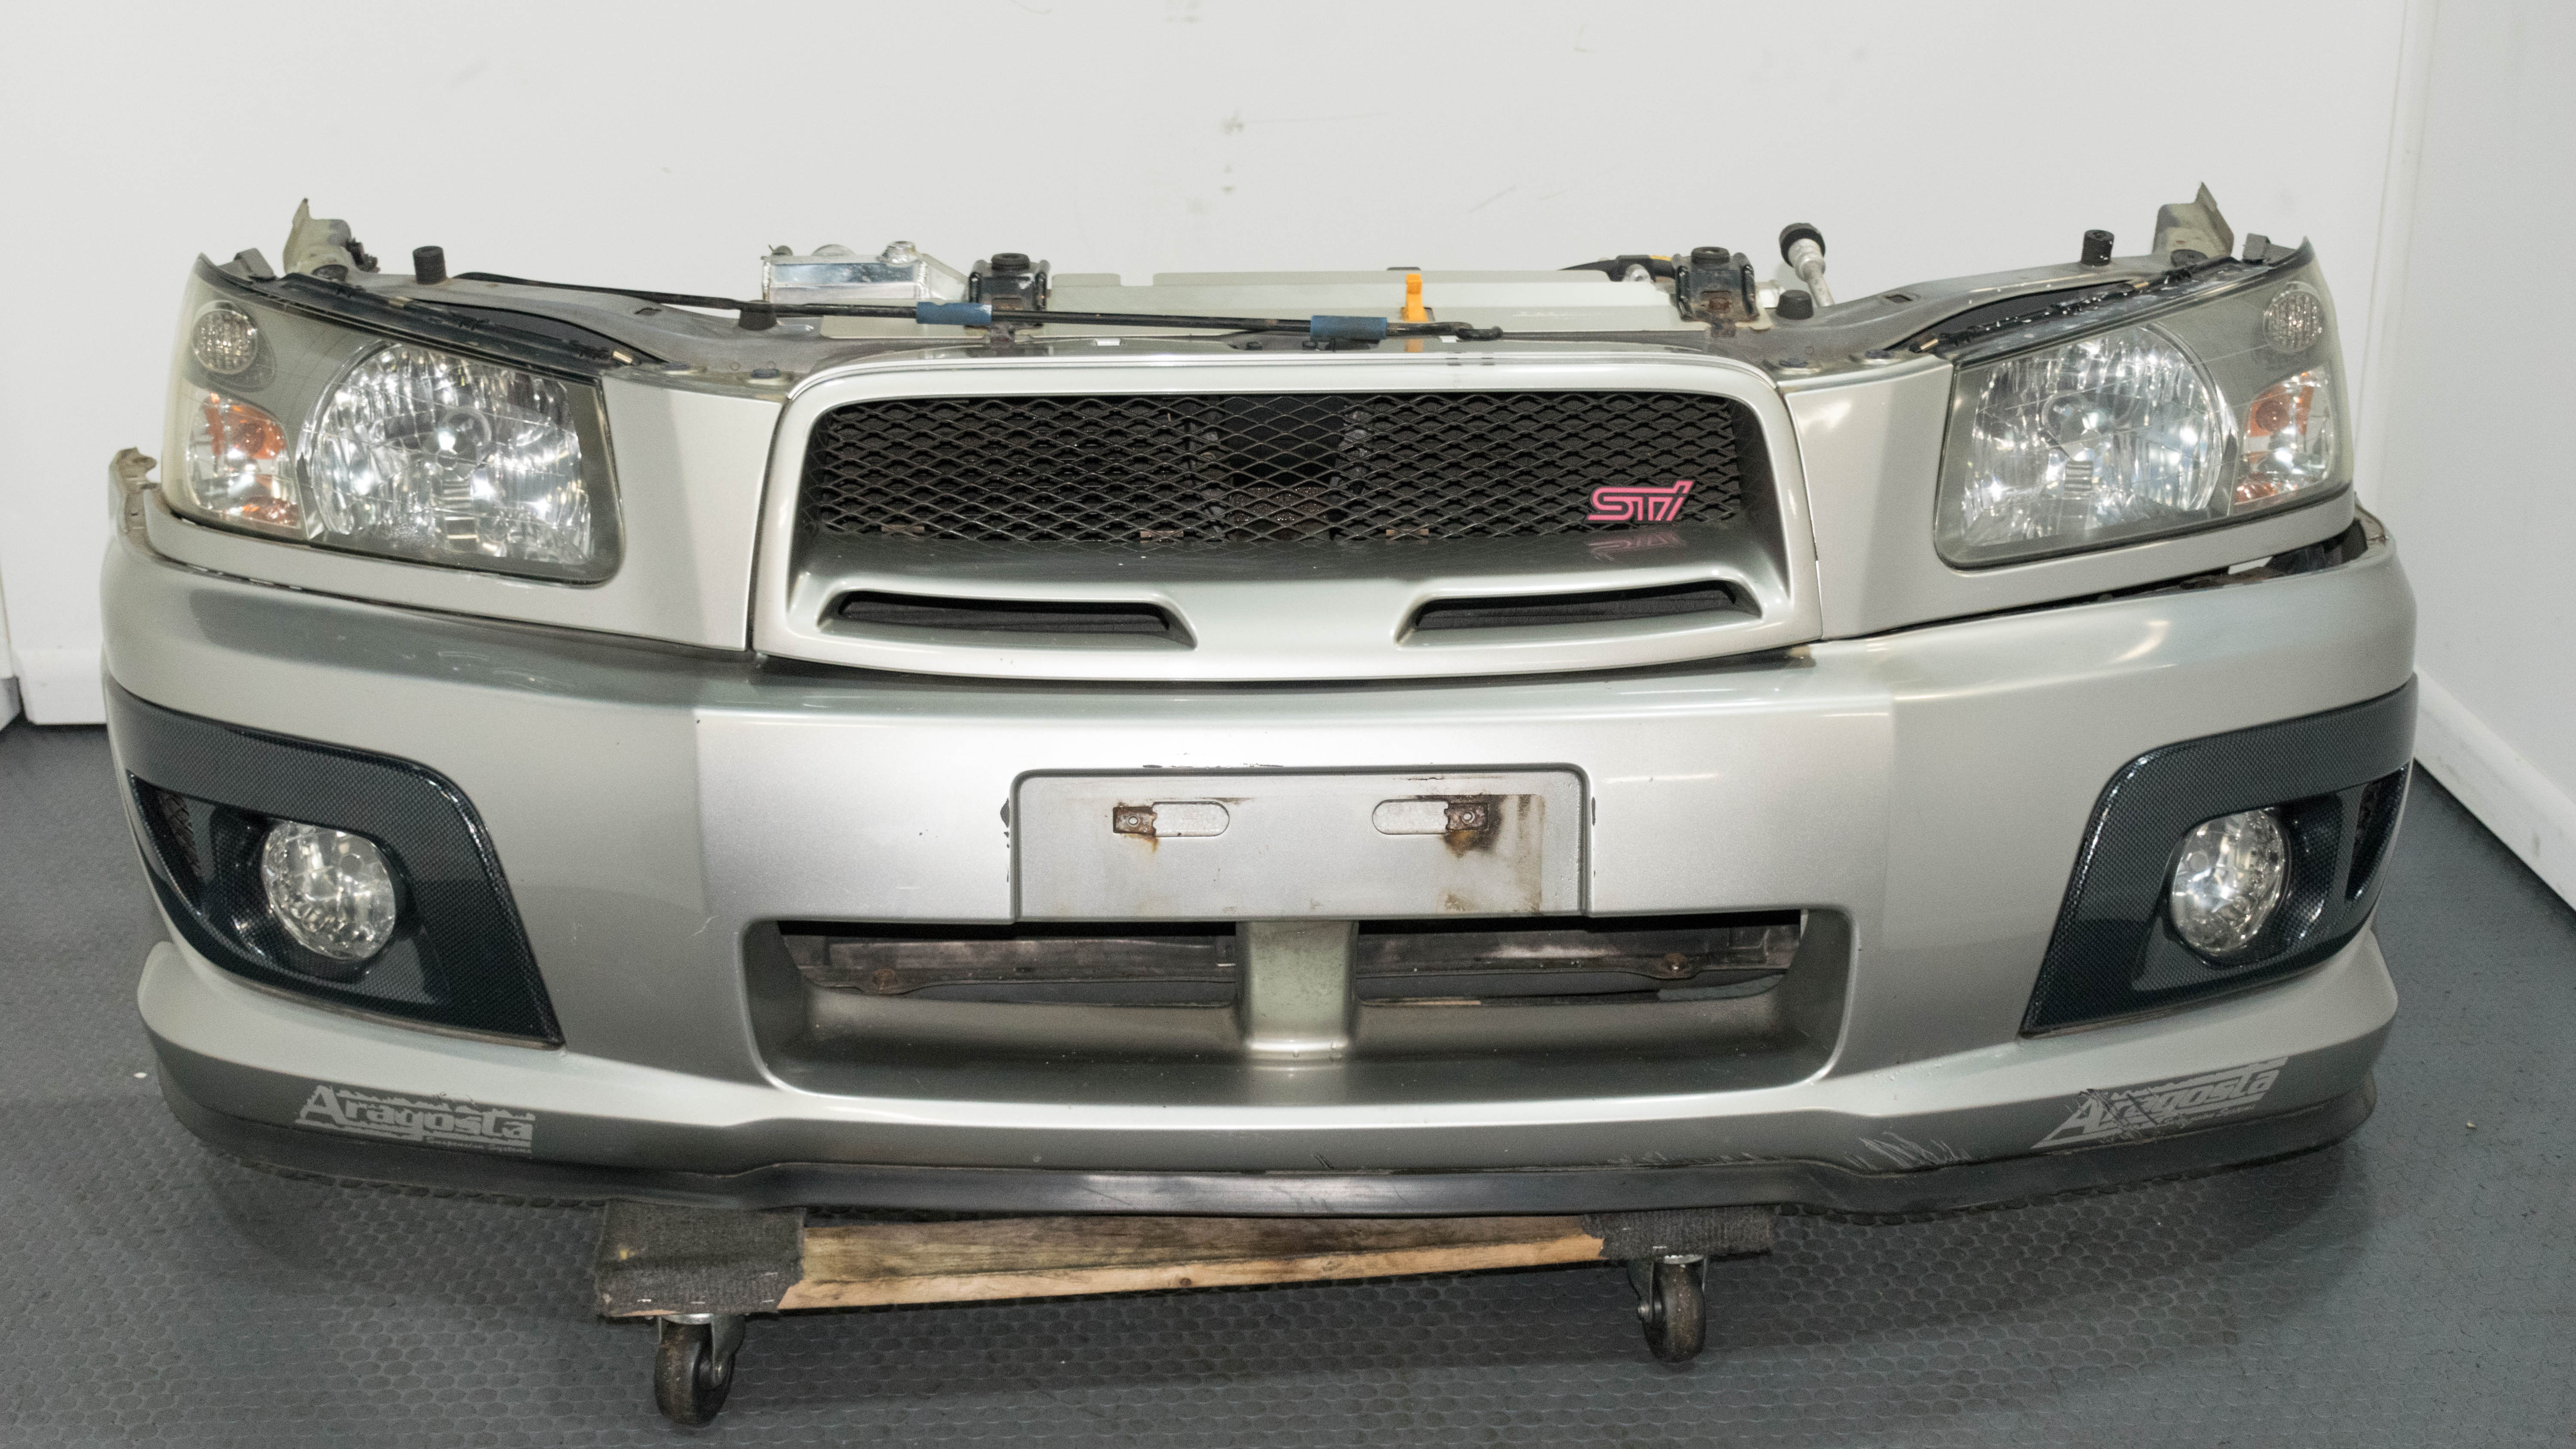 Sti For Sale >> SG9 Forester STI Front Bumper and Radiator Support For Sale with Nice STI Grill | Subaru | J ...